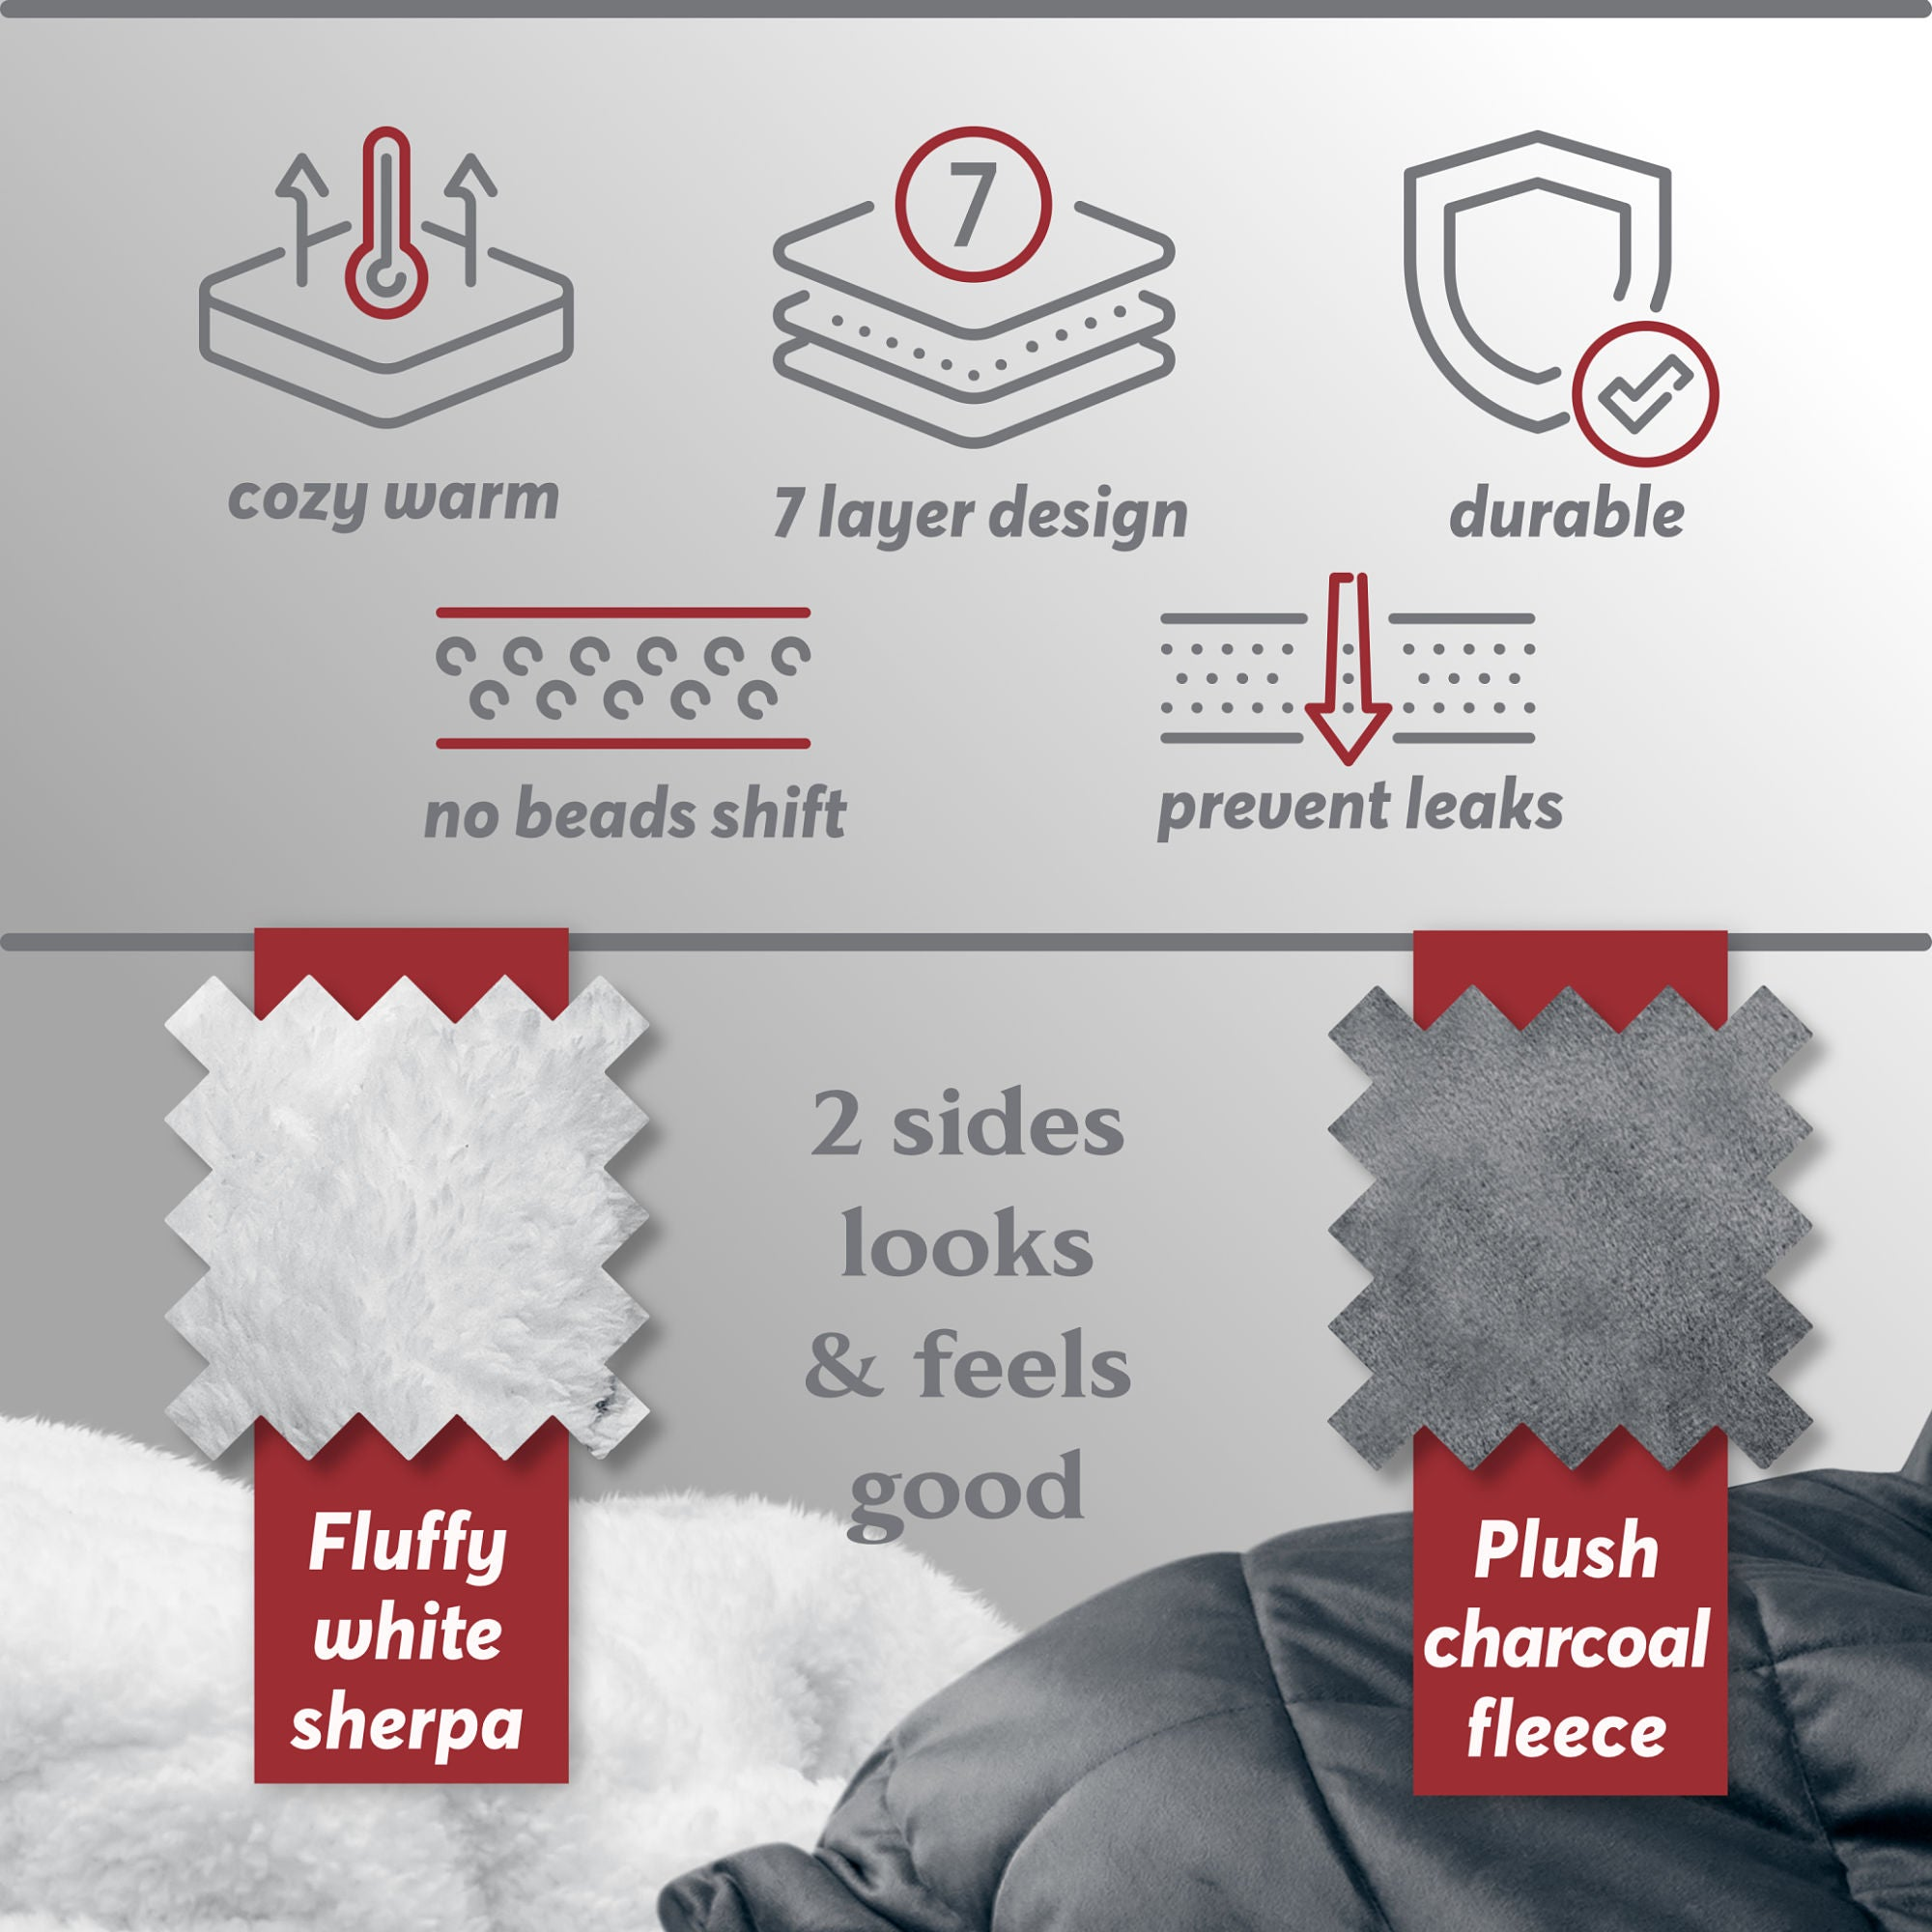 Infographic showing the high quality construction of Restasy weighted blankets with premium 7 layer design. Icons with text including cozy warm, 7 layer design, durable, no beads shift, prevent leaks, quality sherpa fur, and grey charcoal fleece